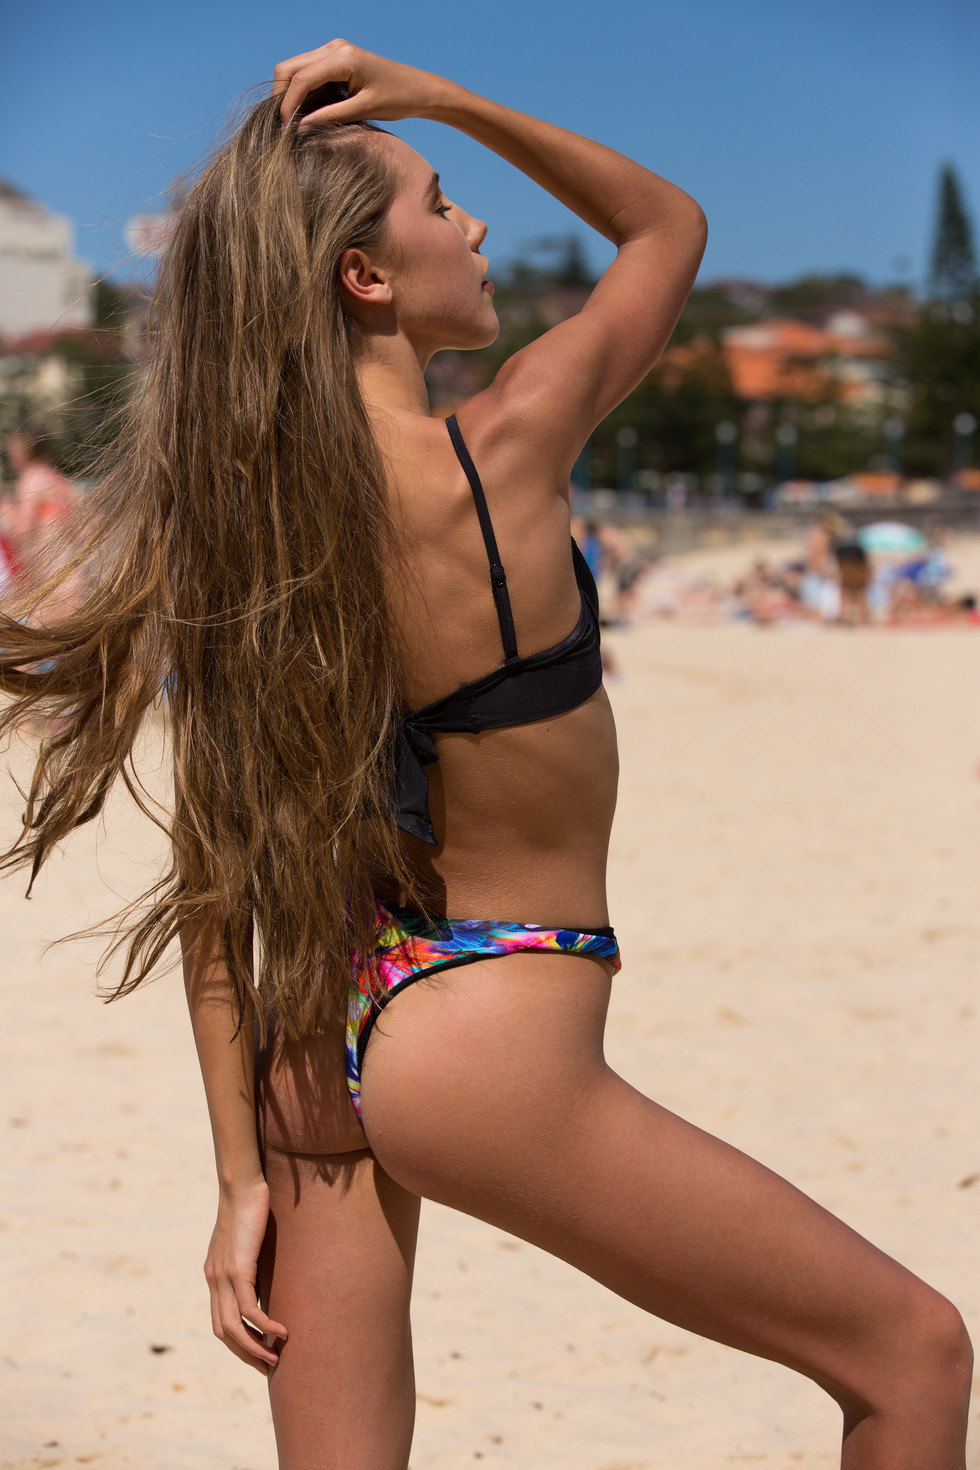 Courtney_by_CoogeePhotography-433016.jpg